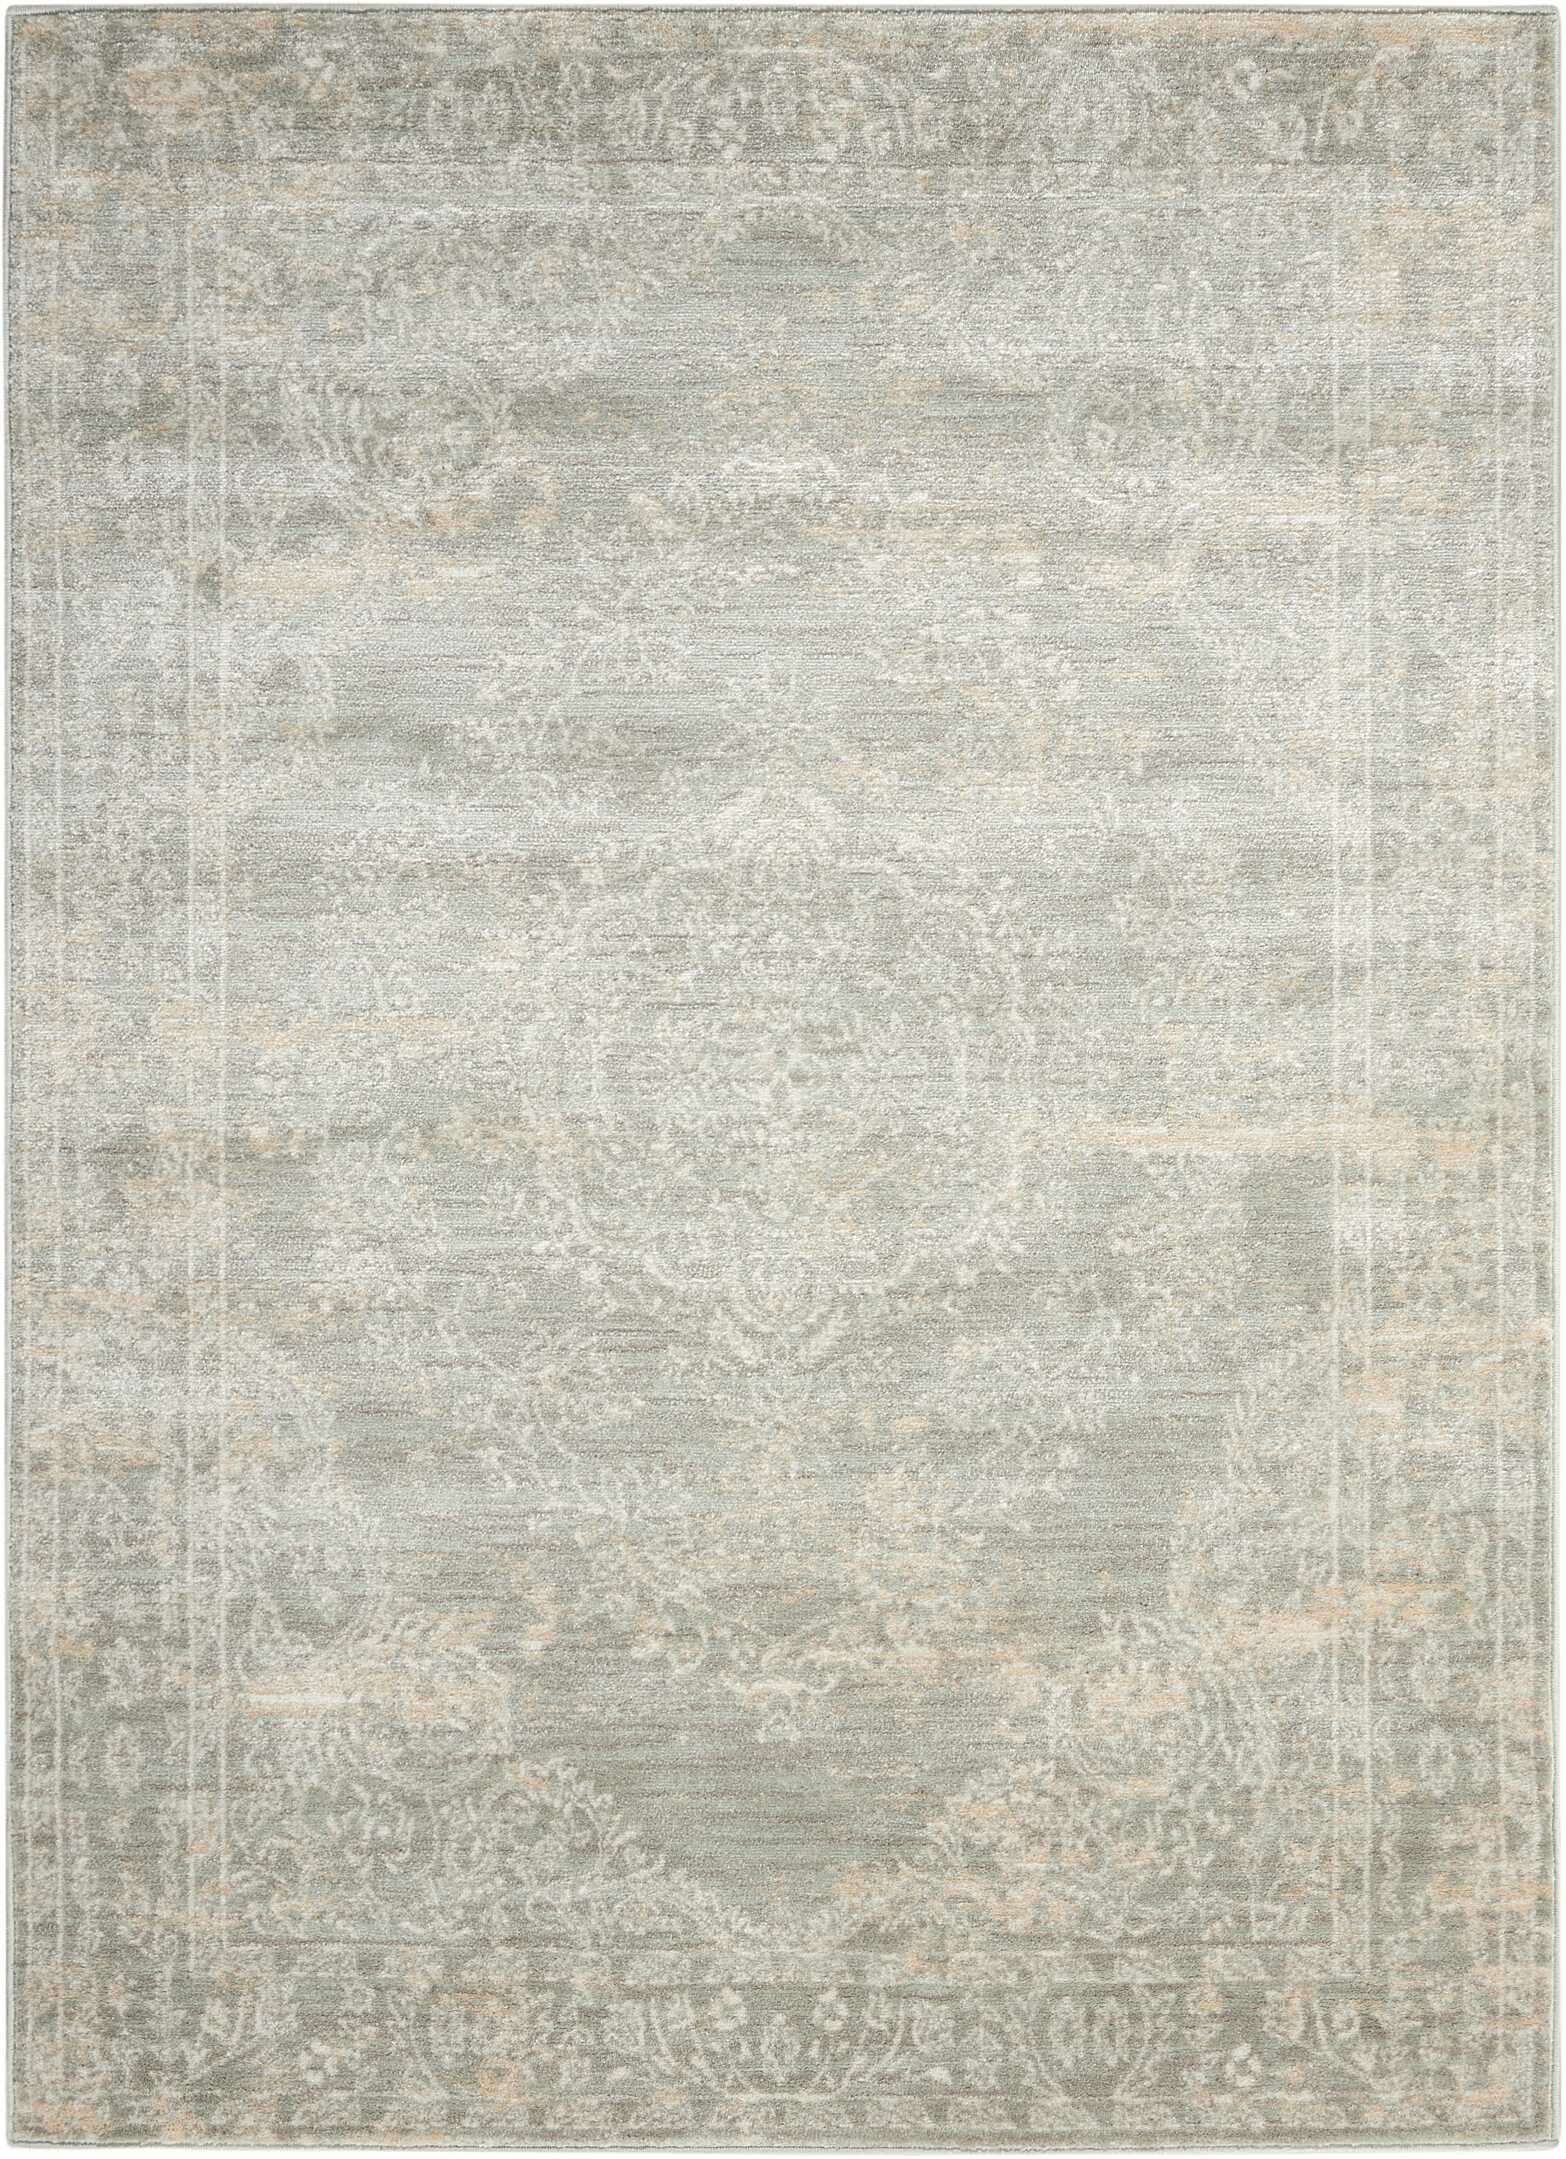 Angelique Gray Area Rug Rug Size: Rectangle 5'3